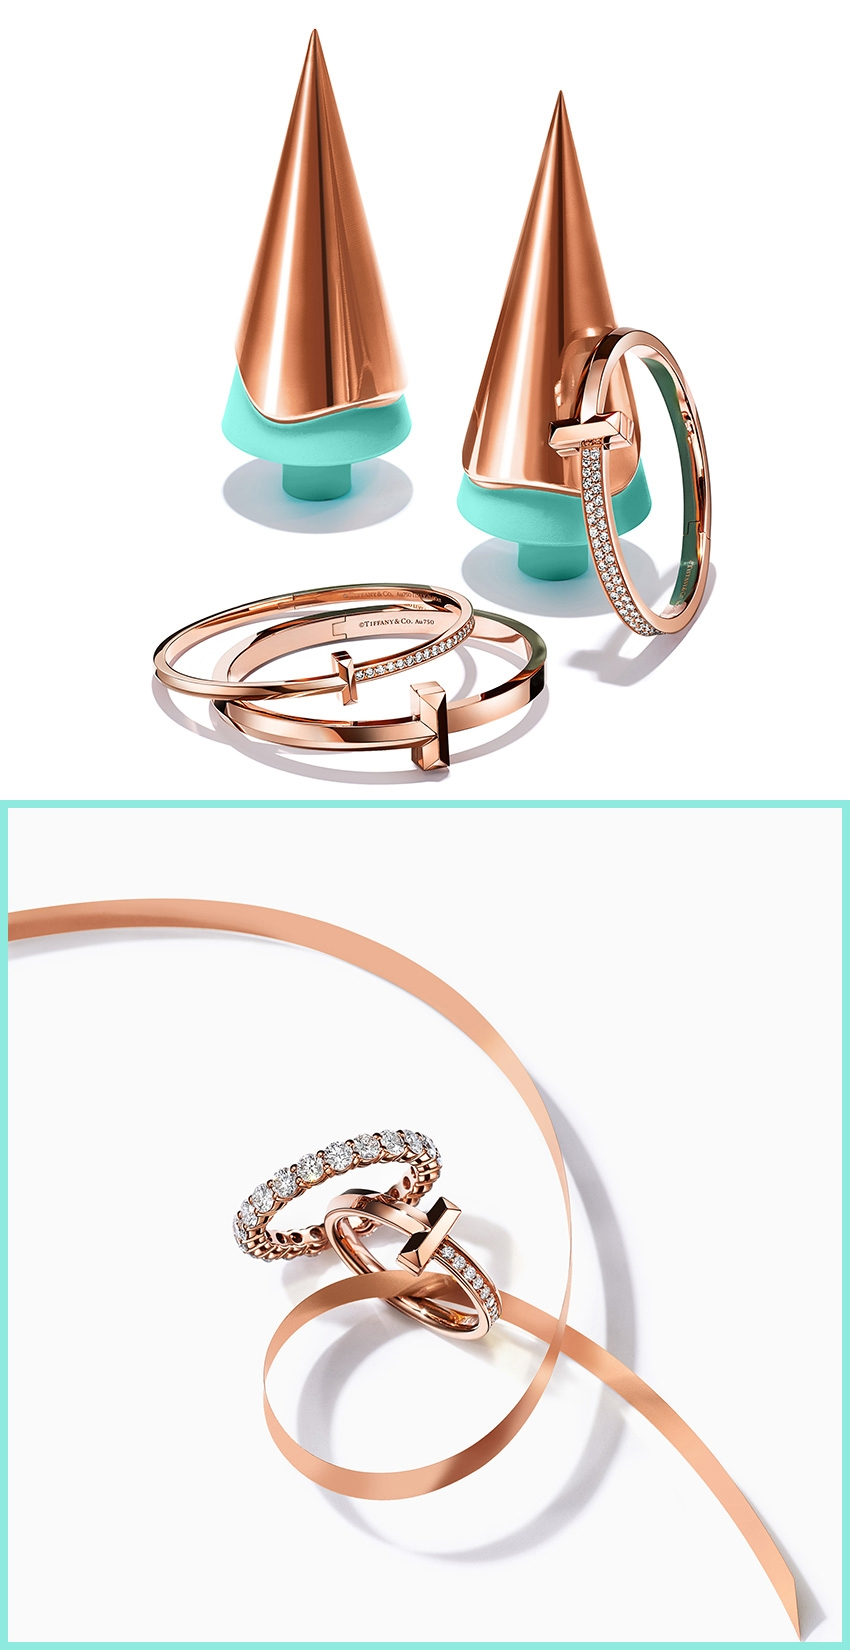 Tiffany T1 Holiday Gift idea featured in Perfect Wedding Magazine